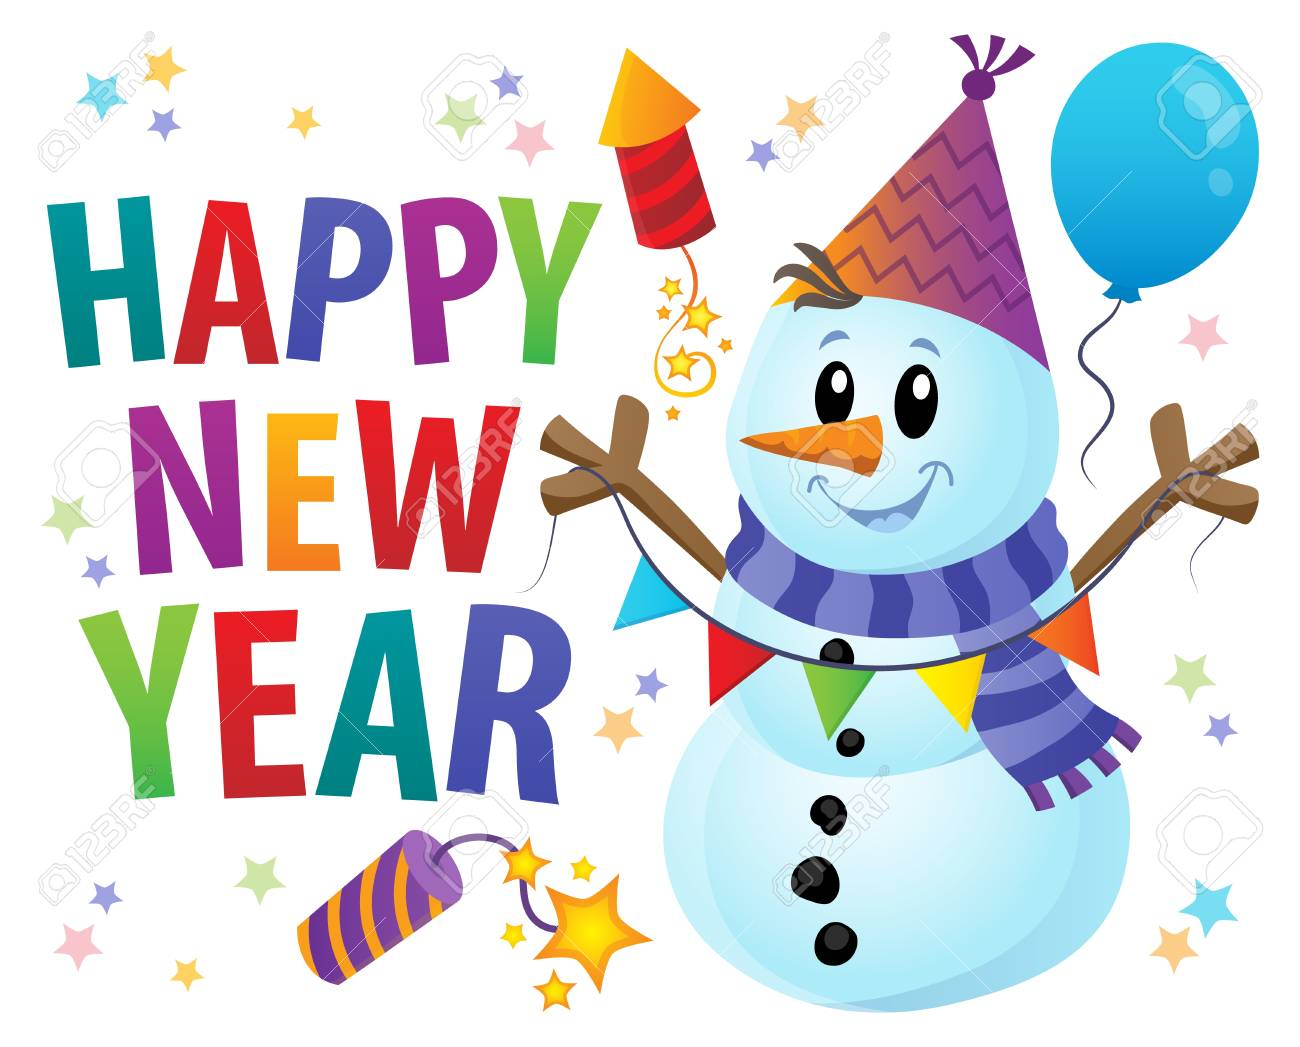 Happy New Year theme with snowman illustration..